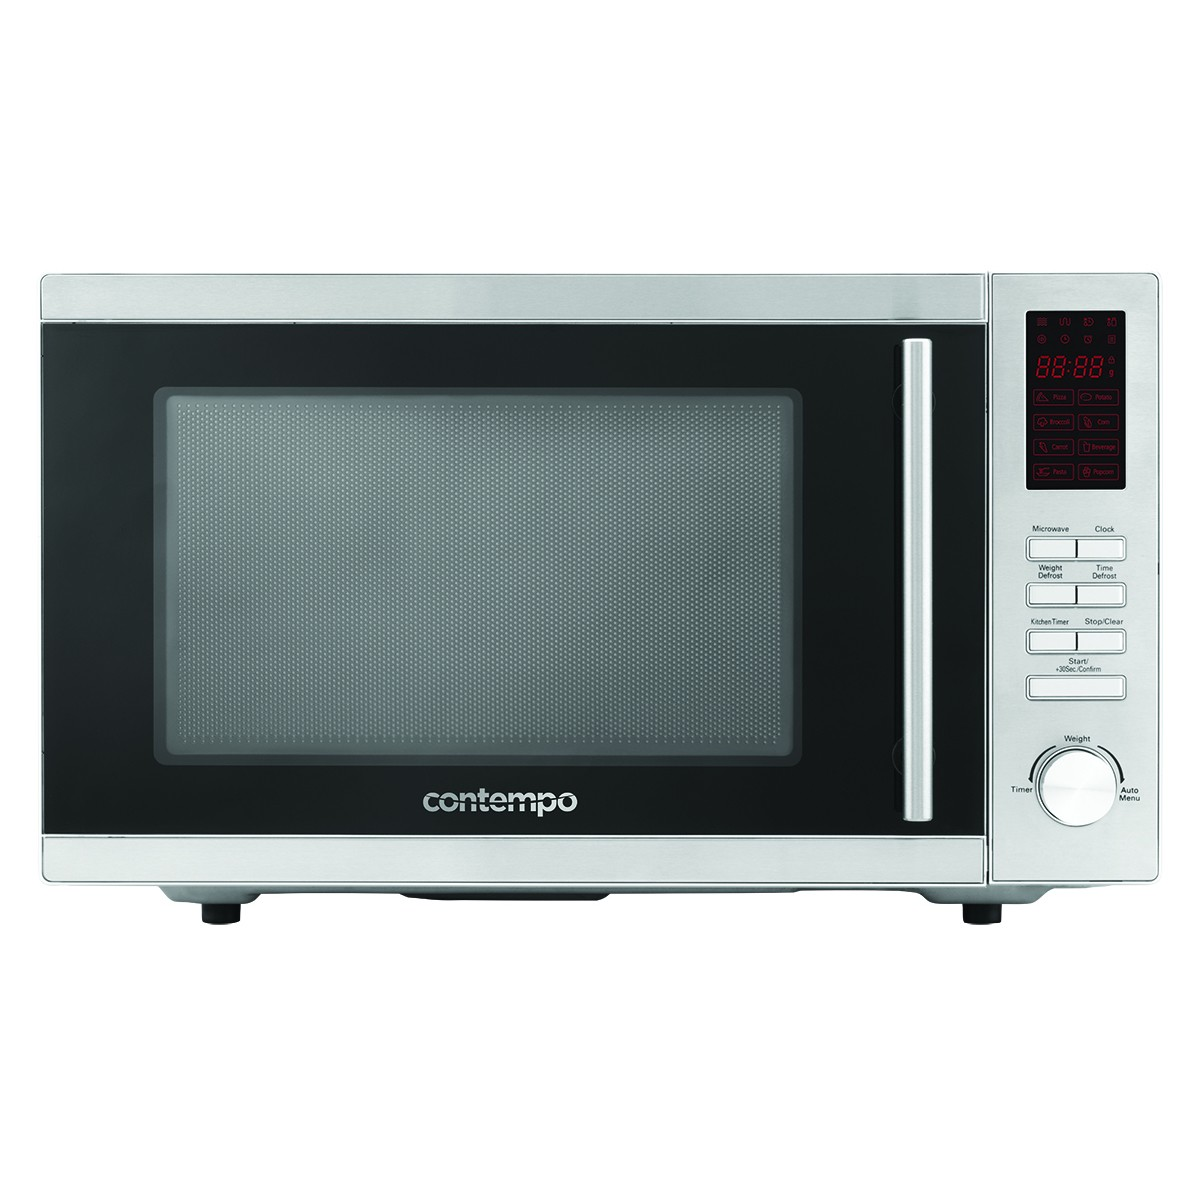 Big W Microwaves Contempo Medium Digital Microwave Oven Big W